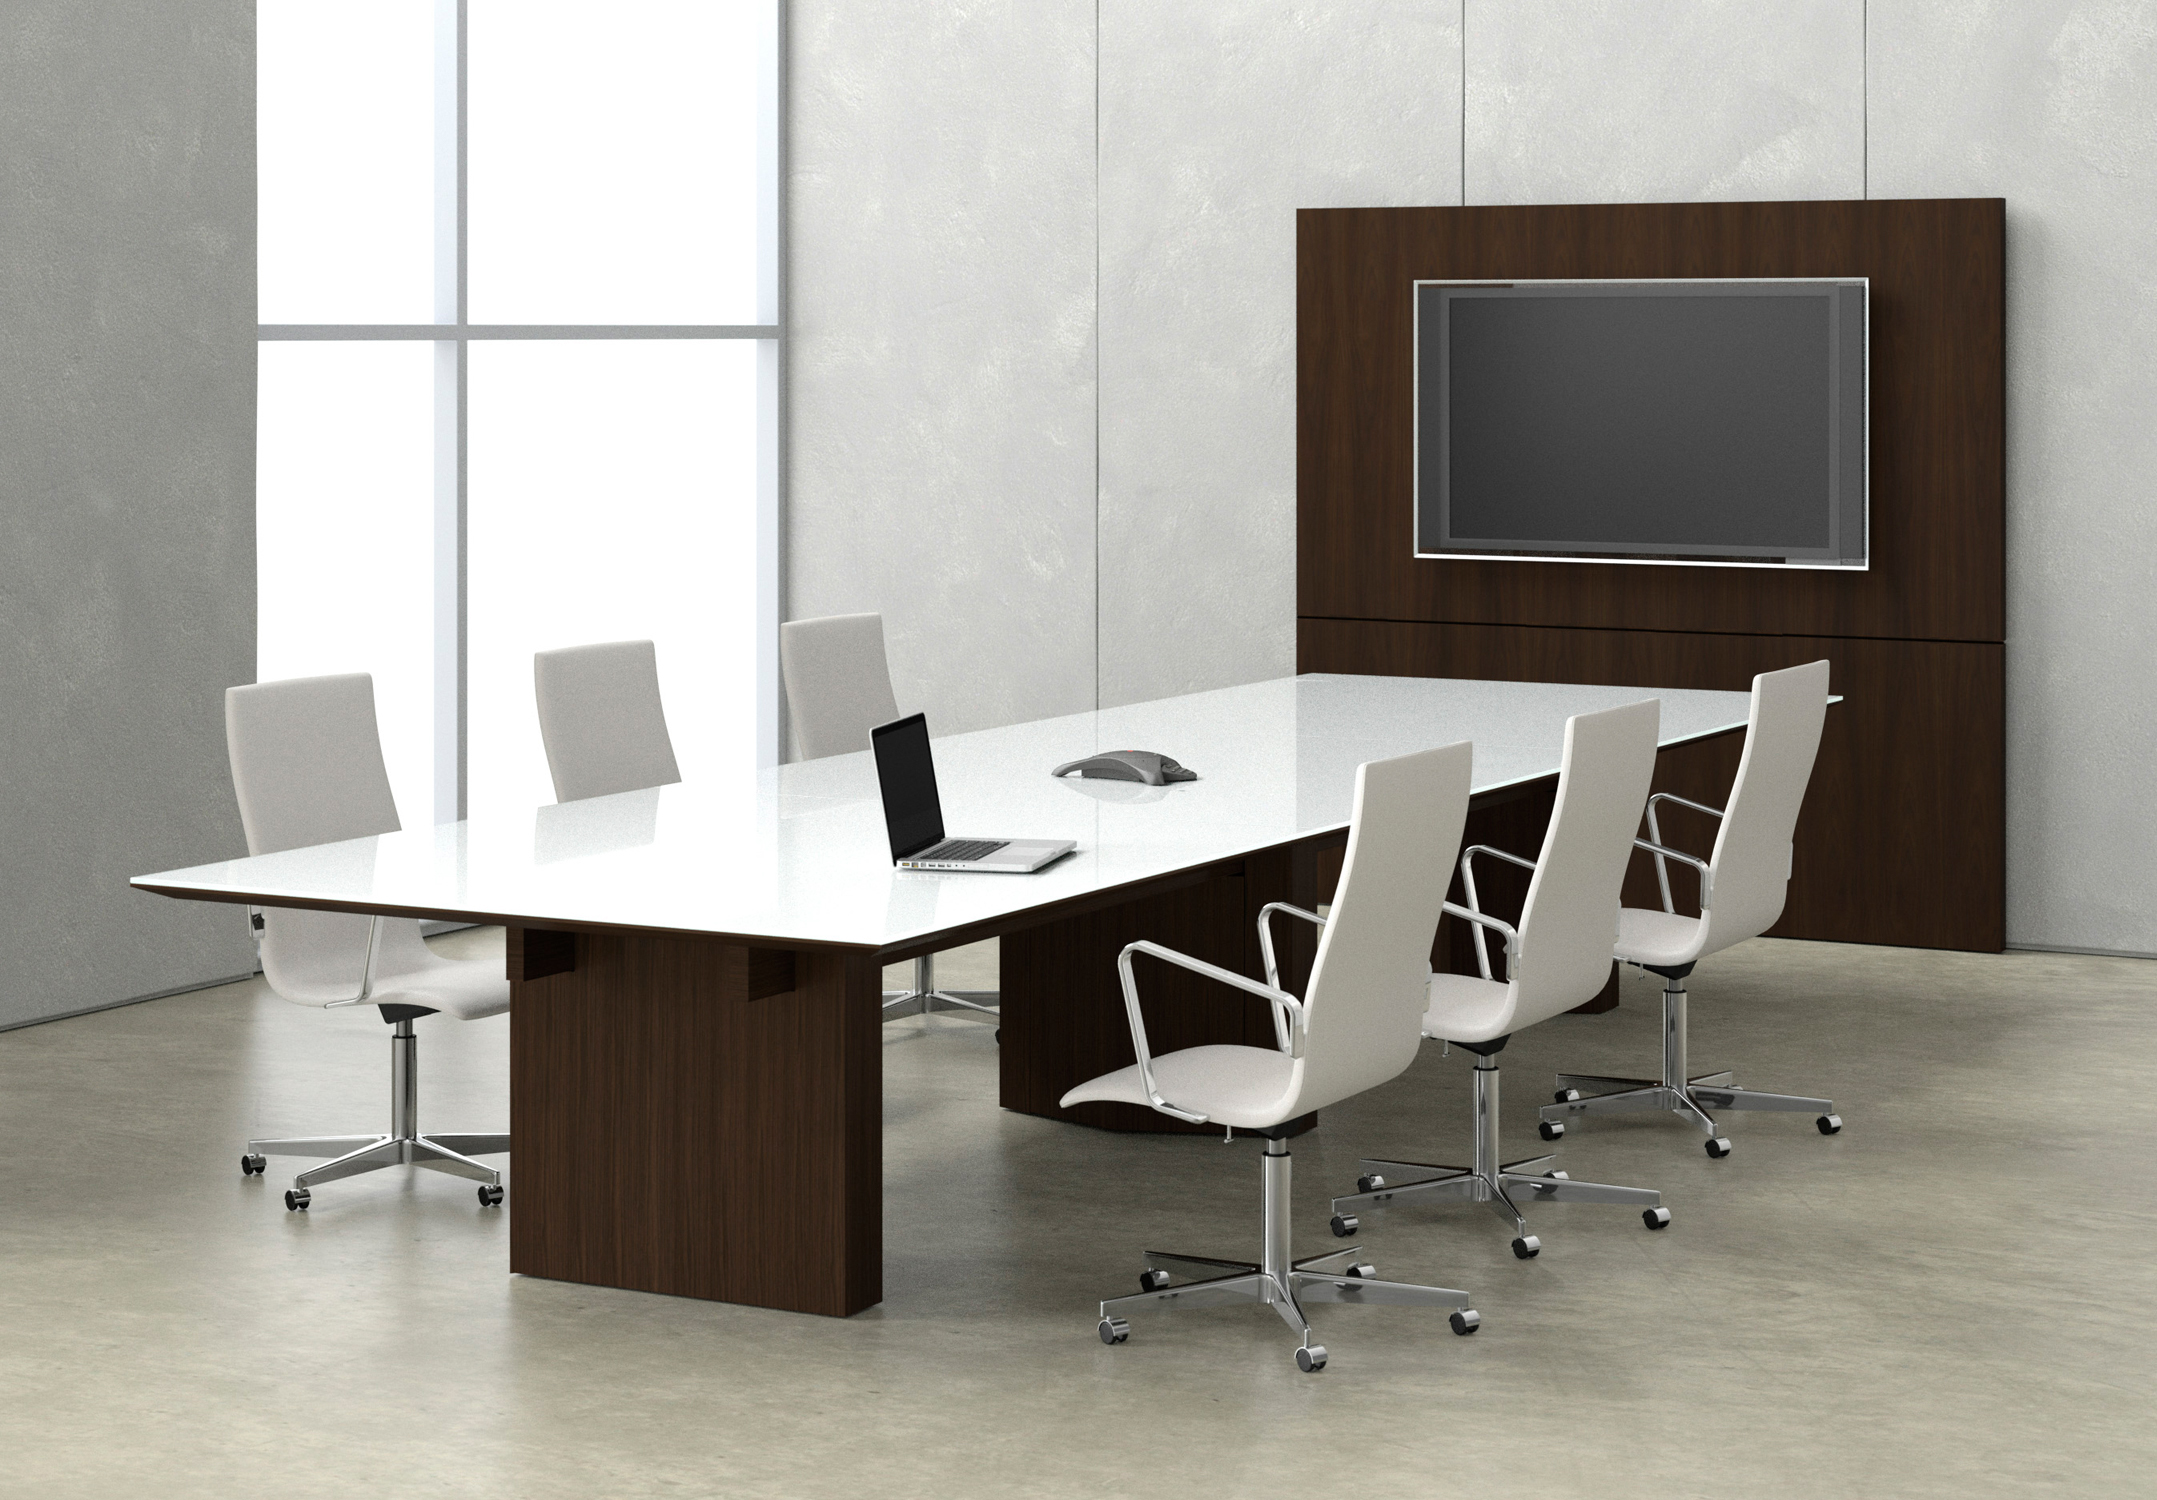 Impress Board Members With These Five Modern Conference Room Designs - Glass top conference room table